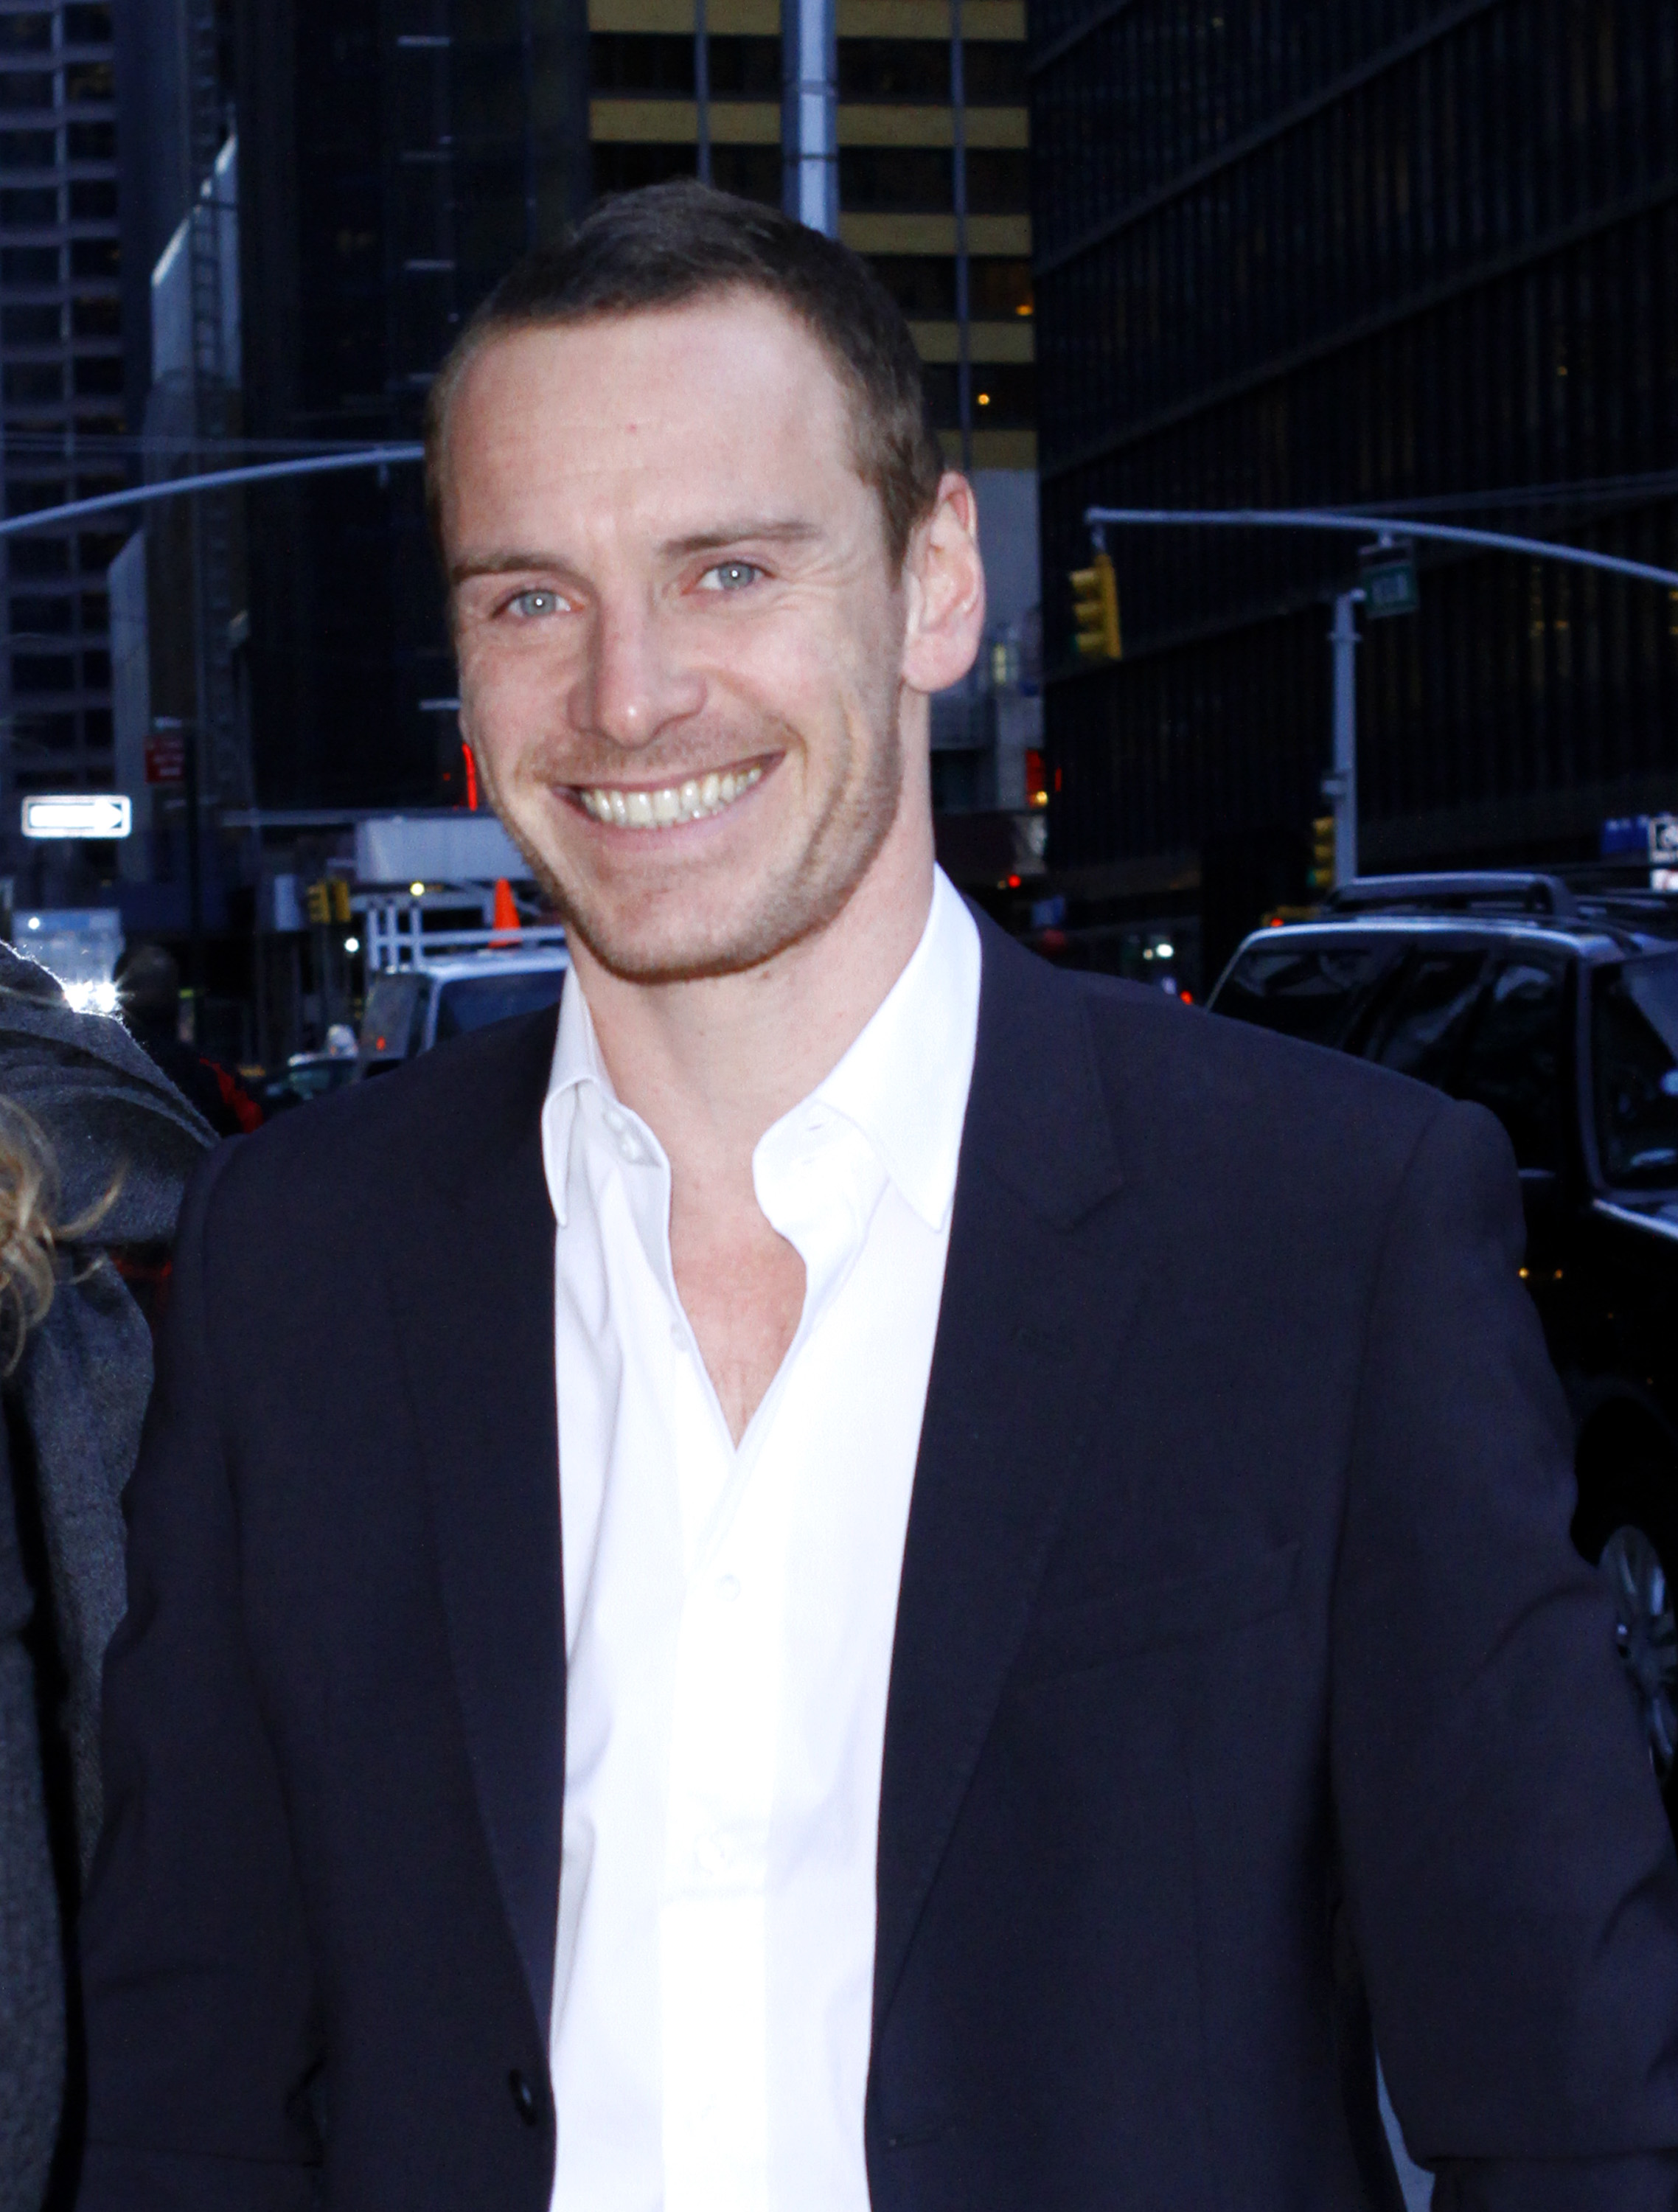 Hot Shots Of Michael Fassbender | Access Online